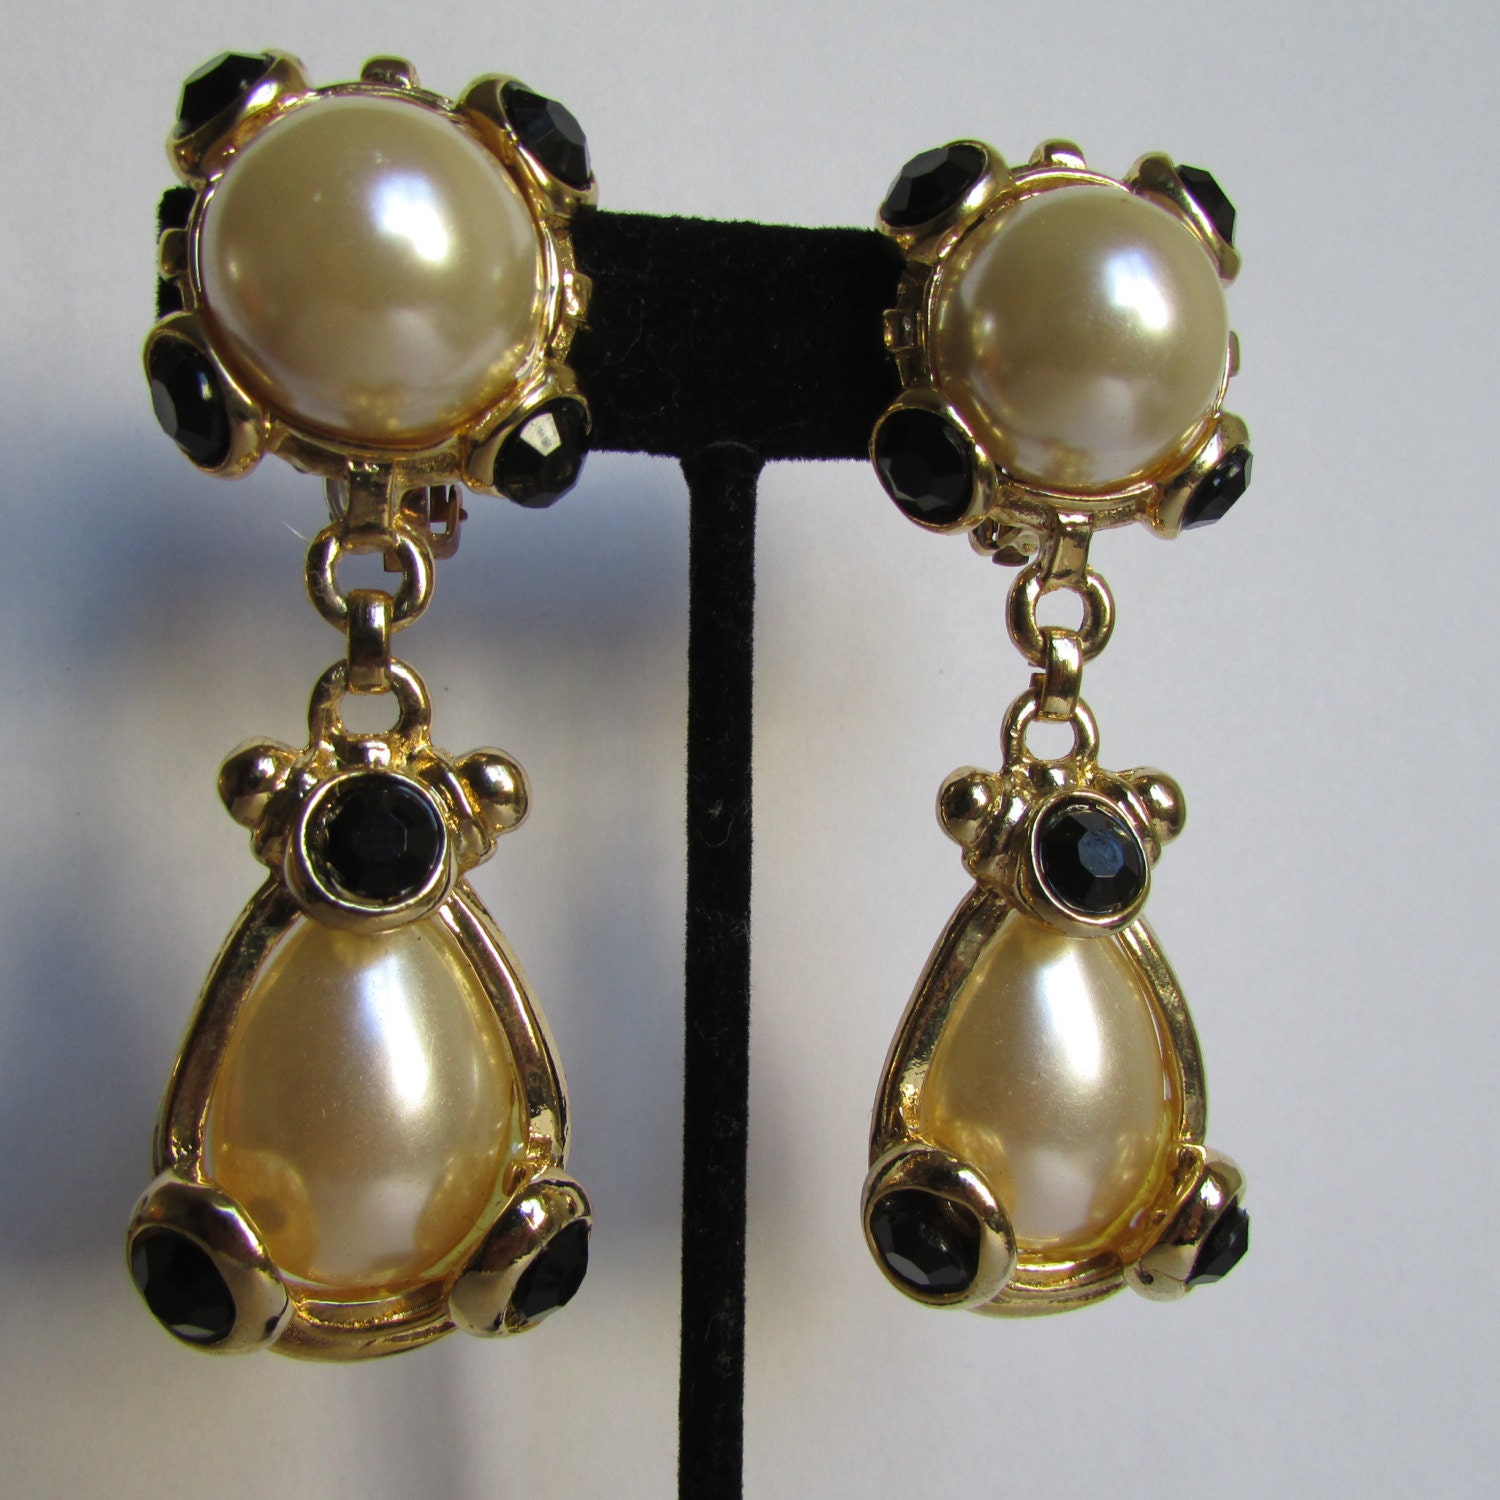 vintage earrings gold faux pearl clip on drop by cruzvintage. Black Bedroom Furniture Sets. Home Design Ideas